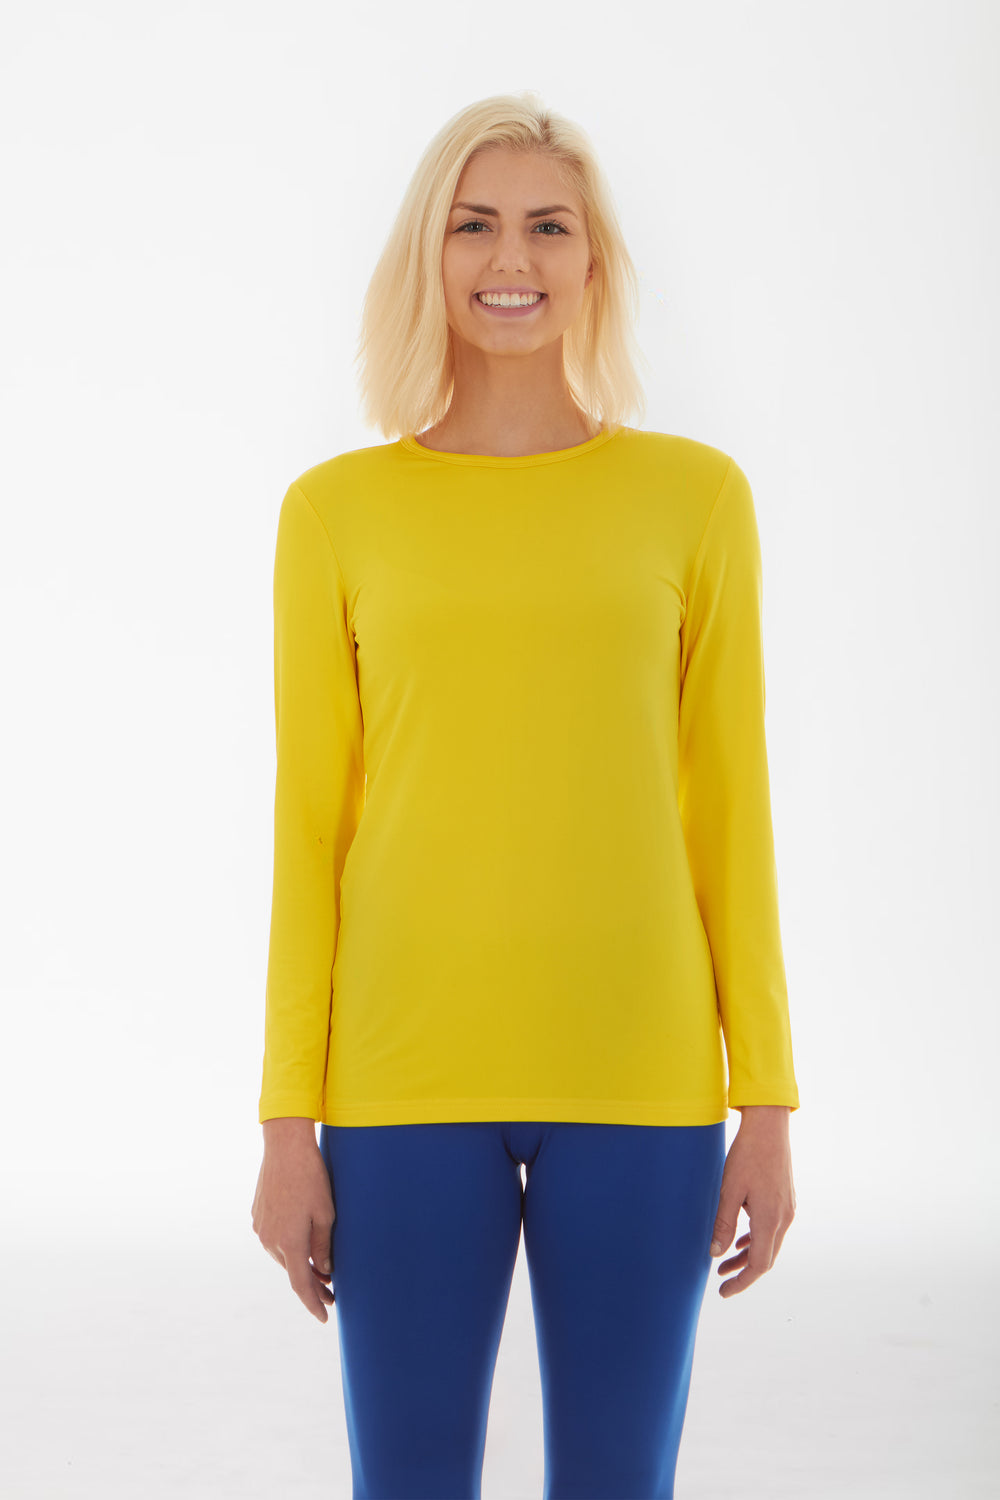 Women's Crew Neck Thermal Yellow Shirt